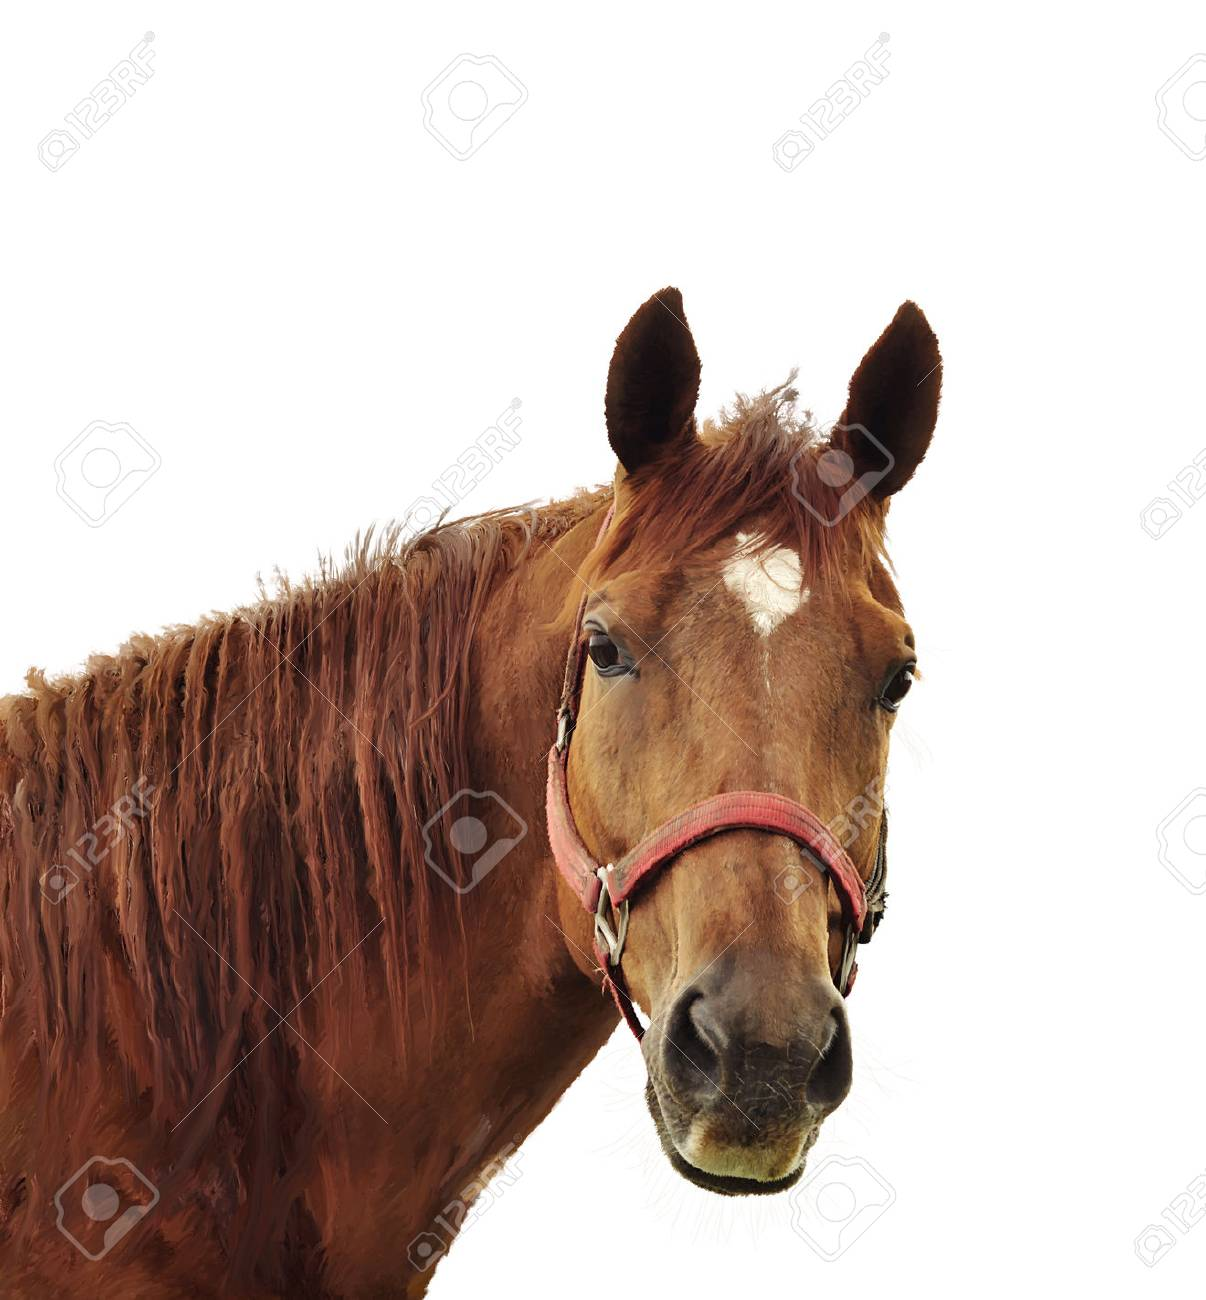 Digital Painting Of Brown Horse Head Stock Photo Picture And Royalty Free Image Image 39805950